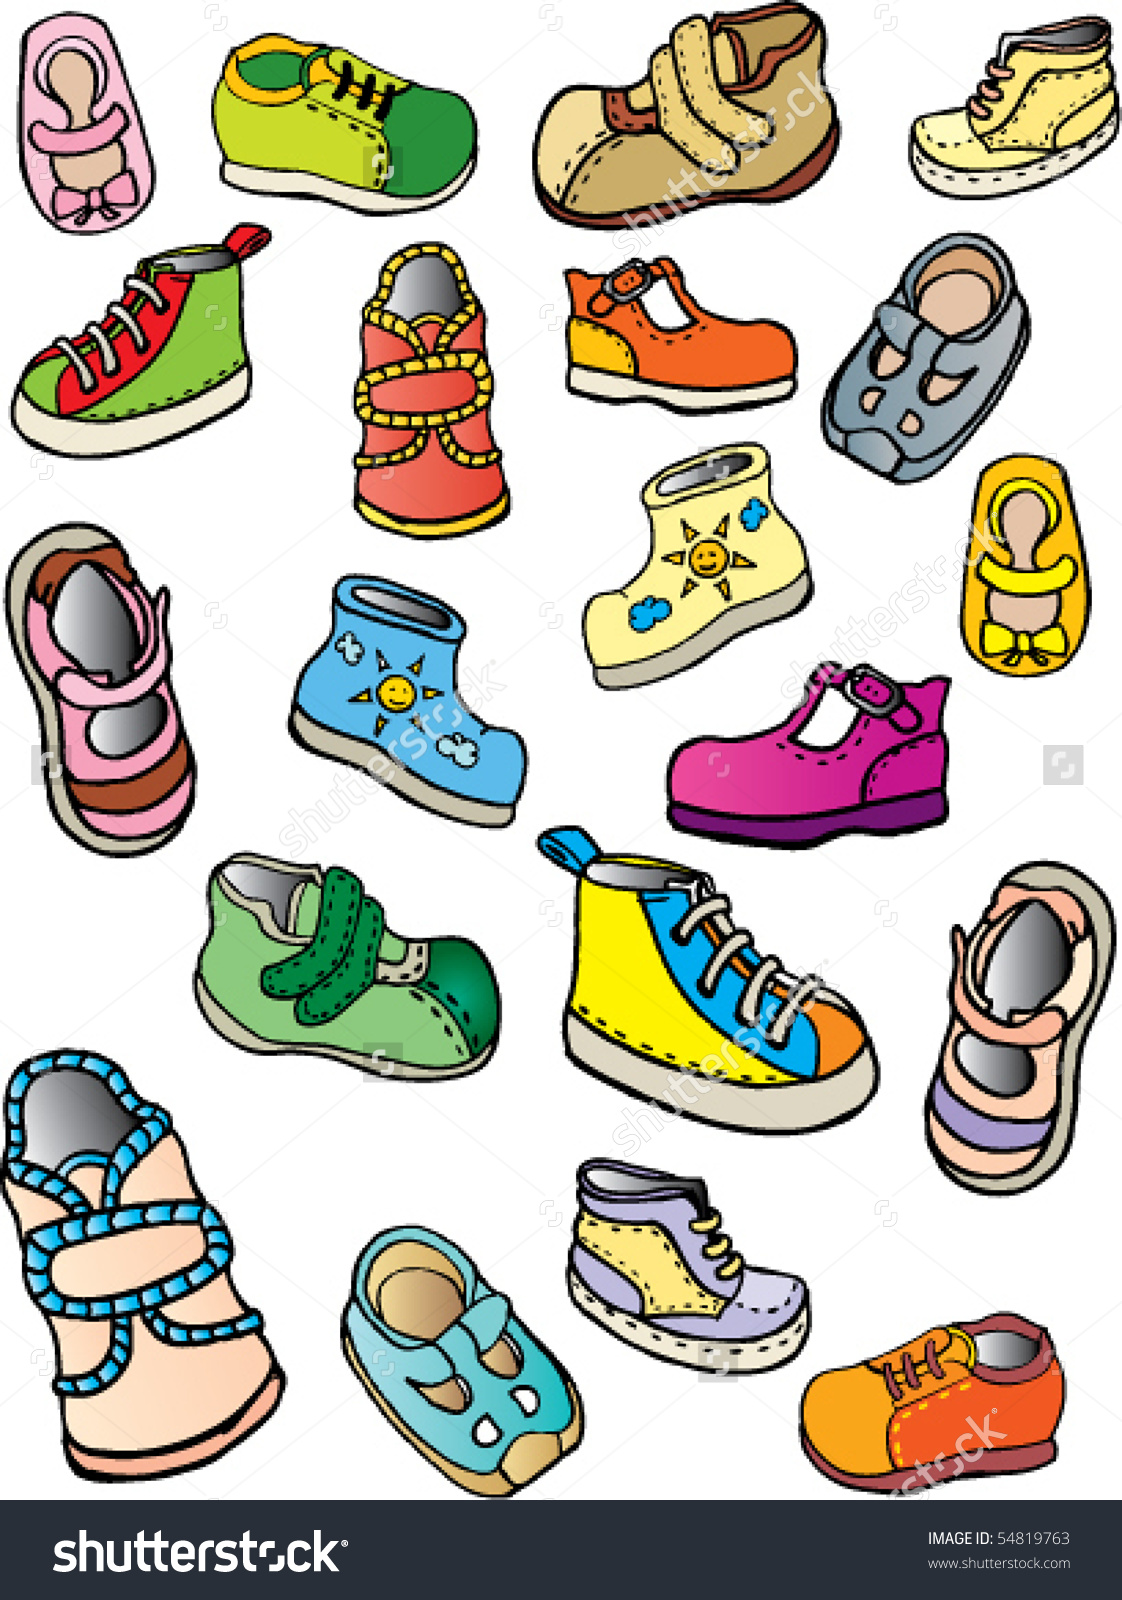 Childrens Shoes Stock Vector 54819763.